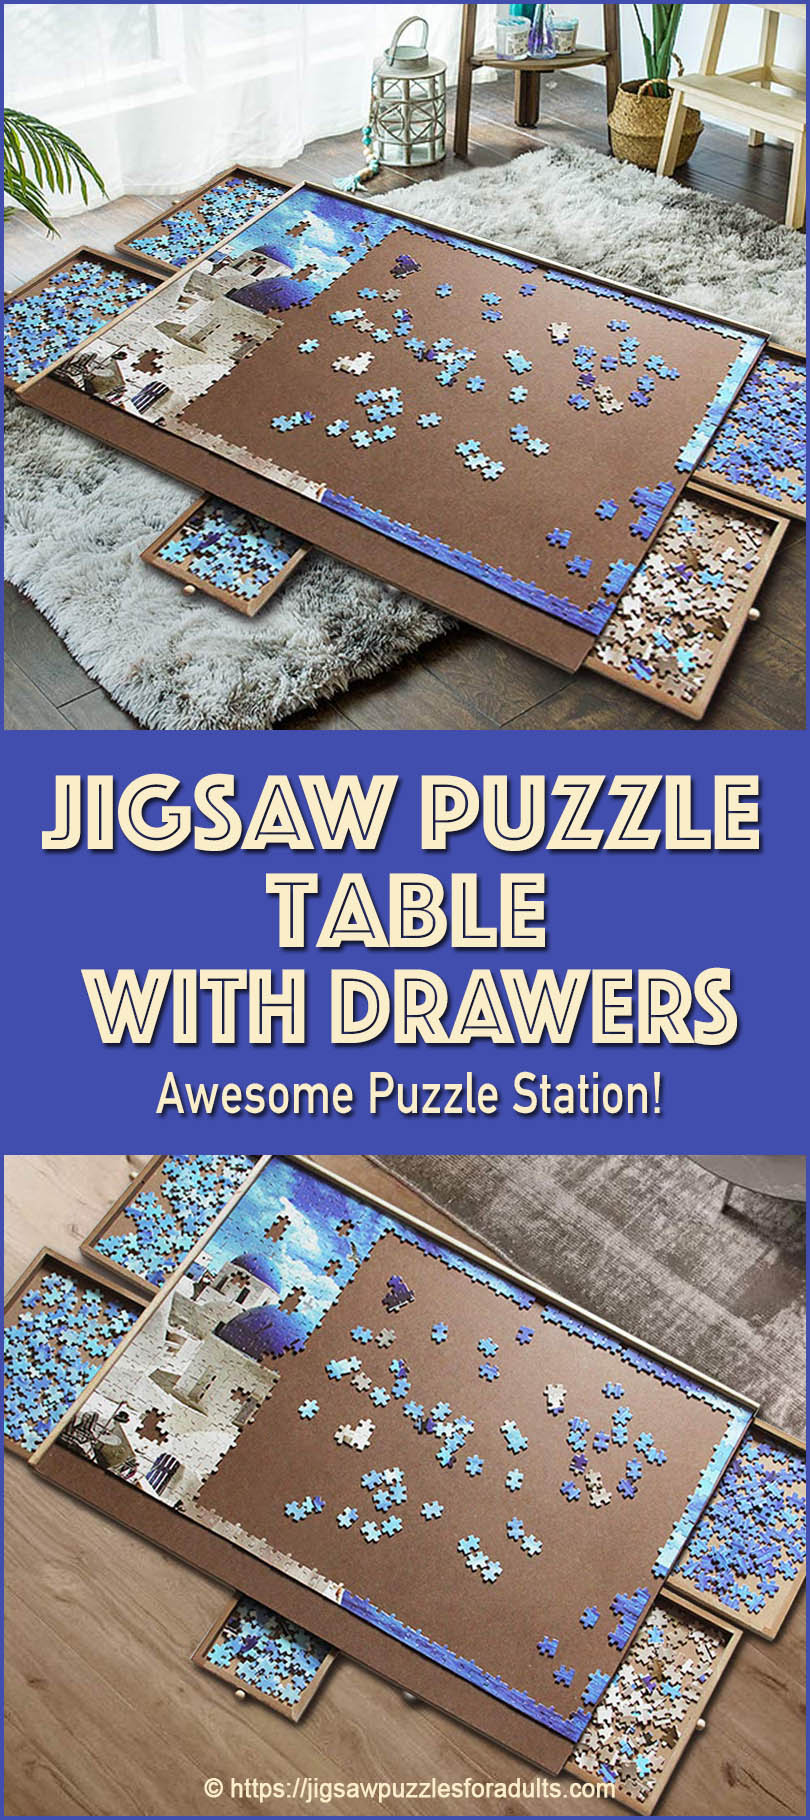 Jigsaw Puzzle Table Drawers